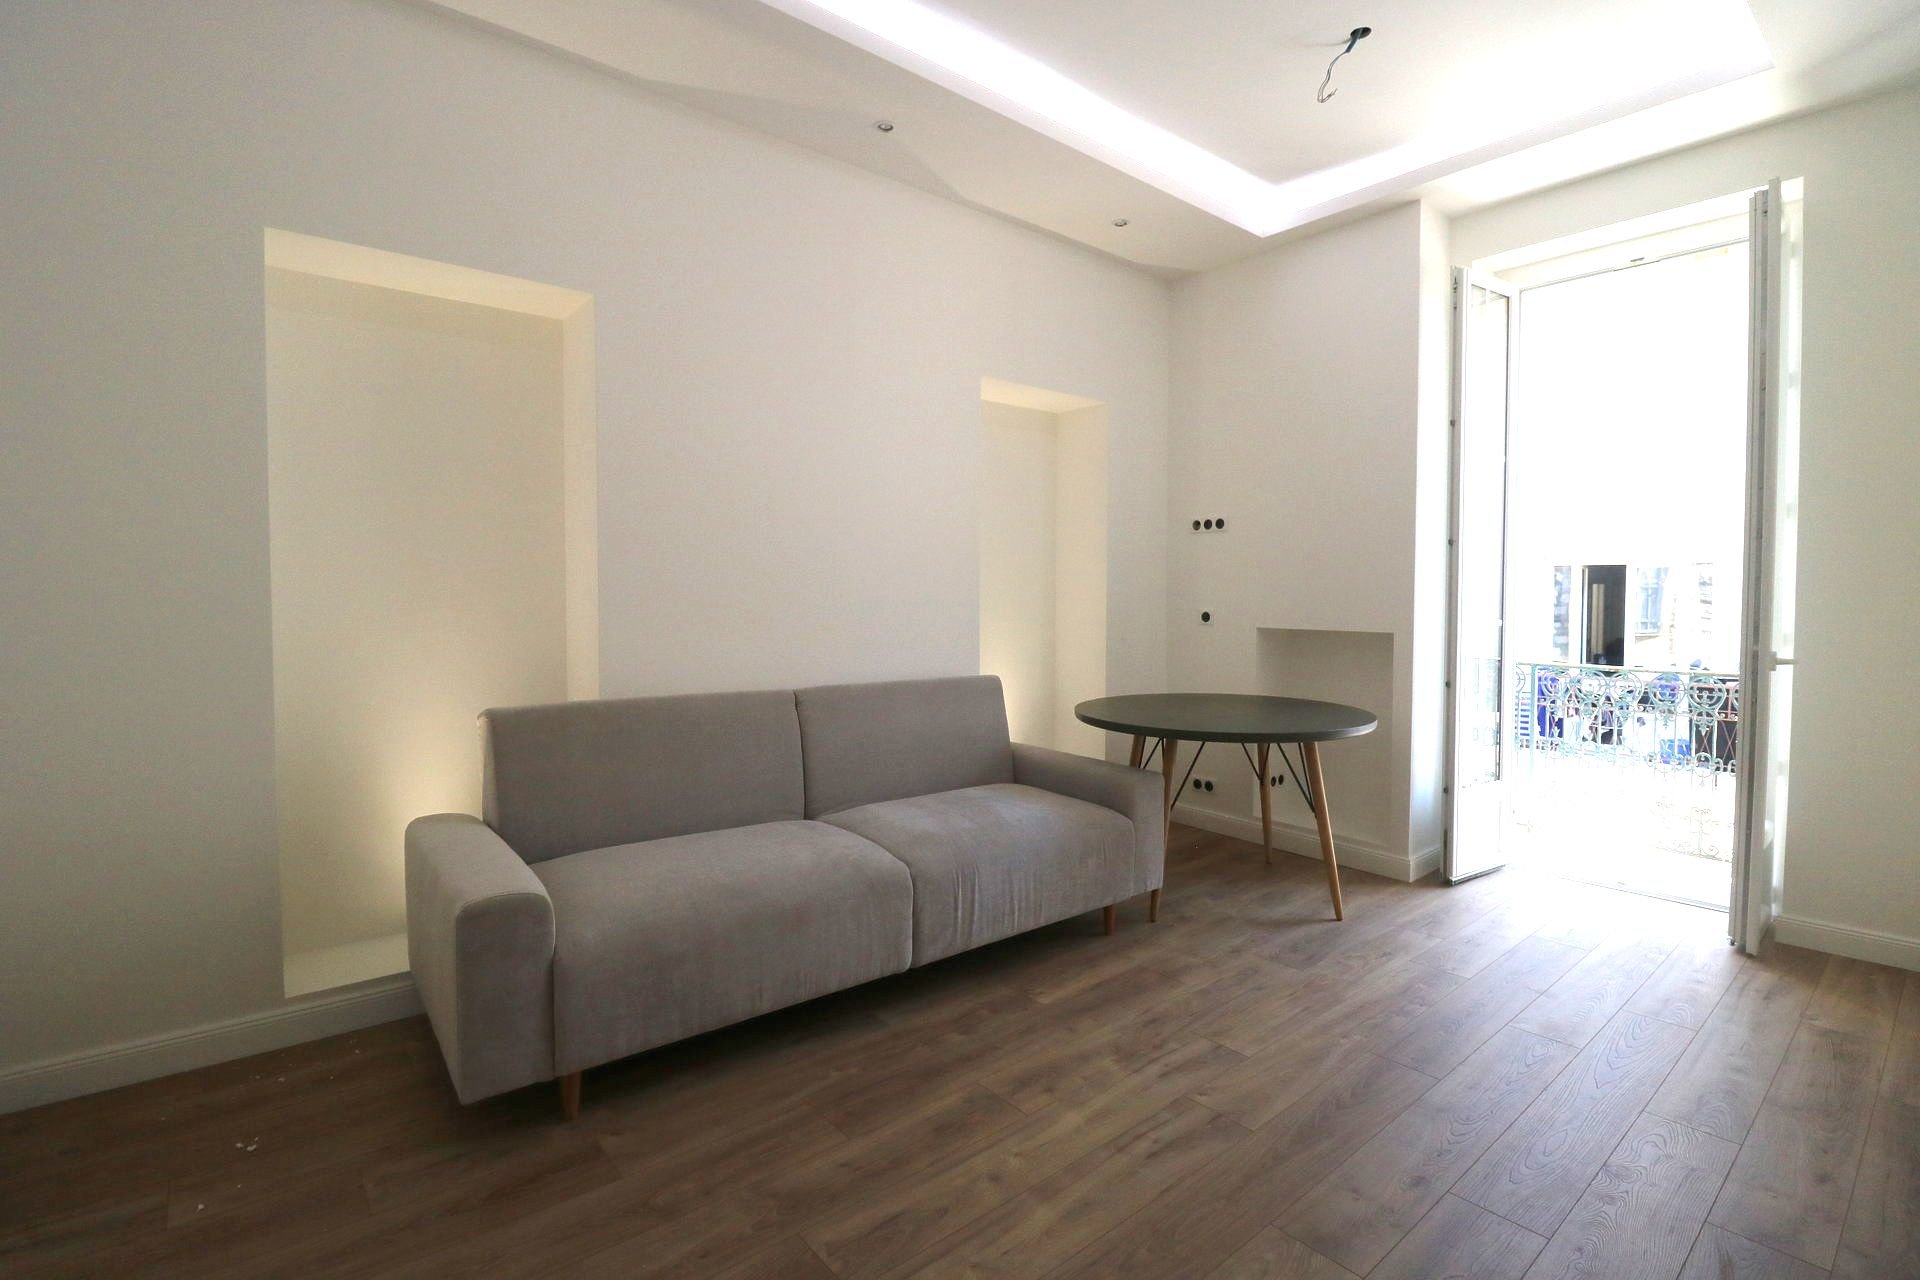 3 rooms - renovated